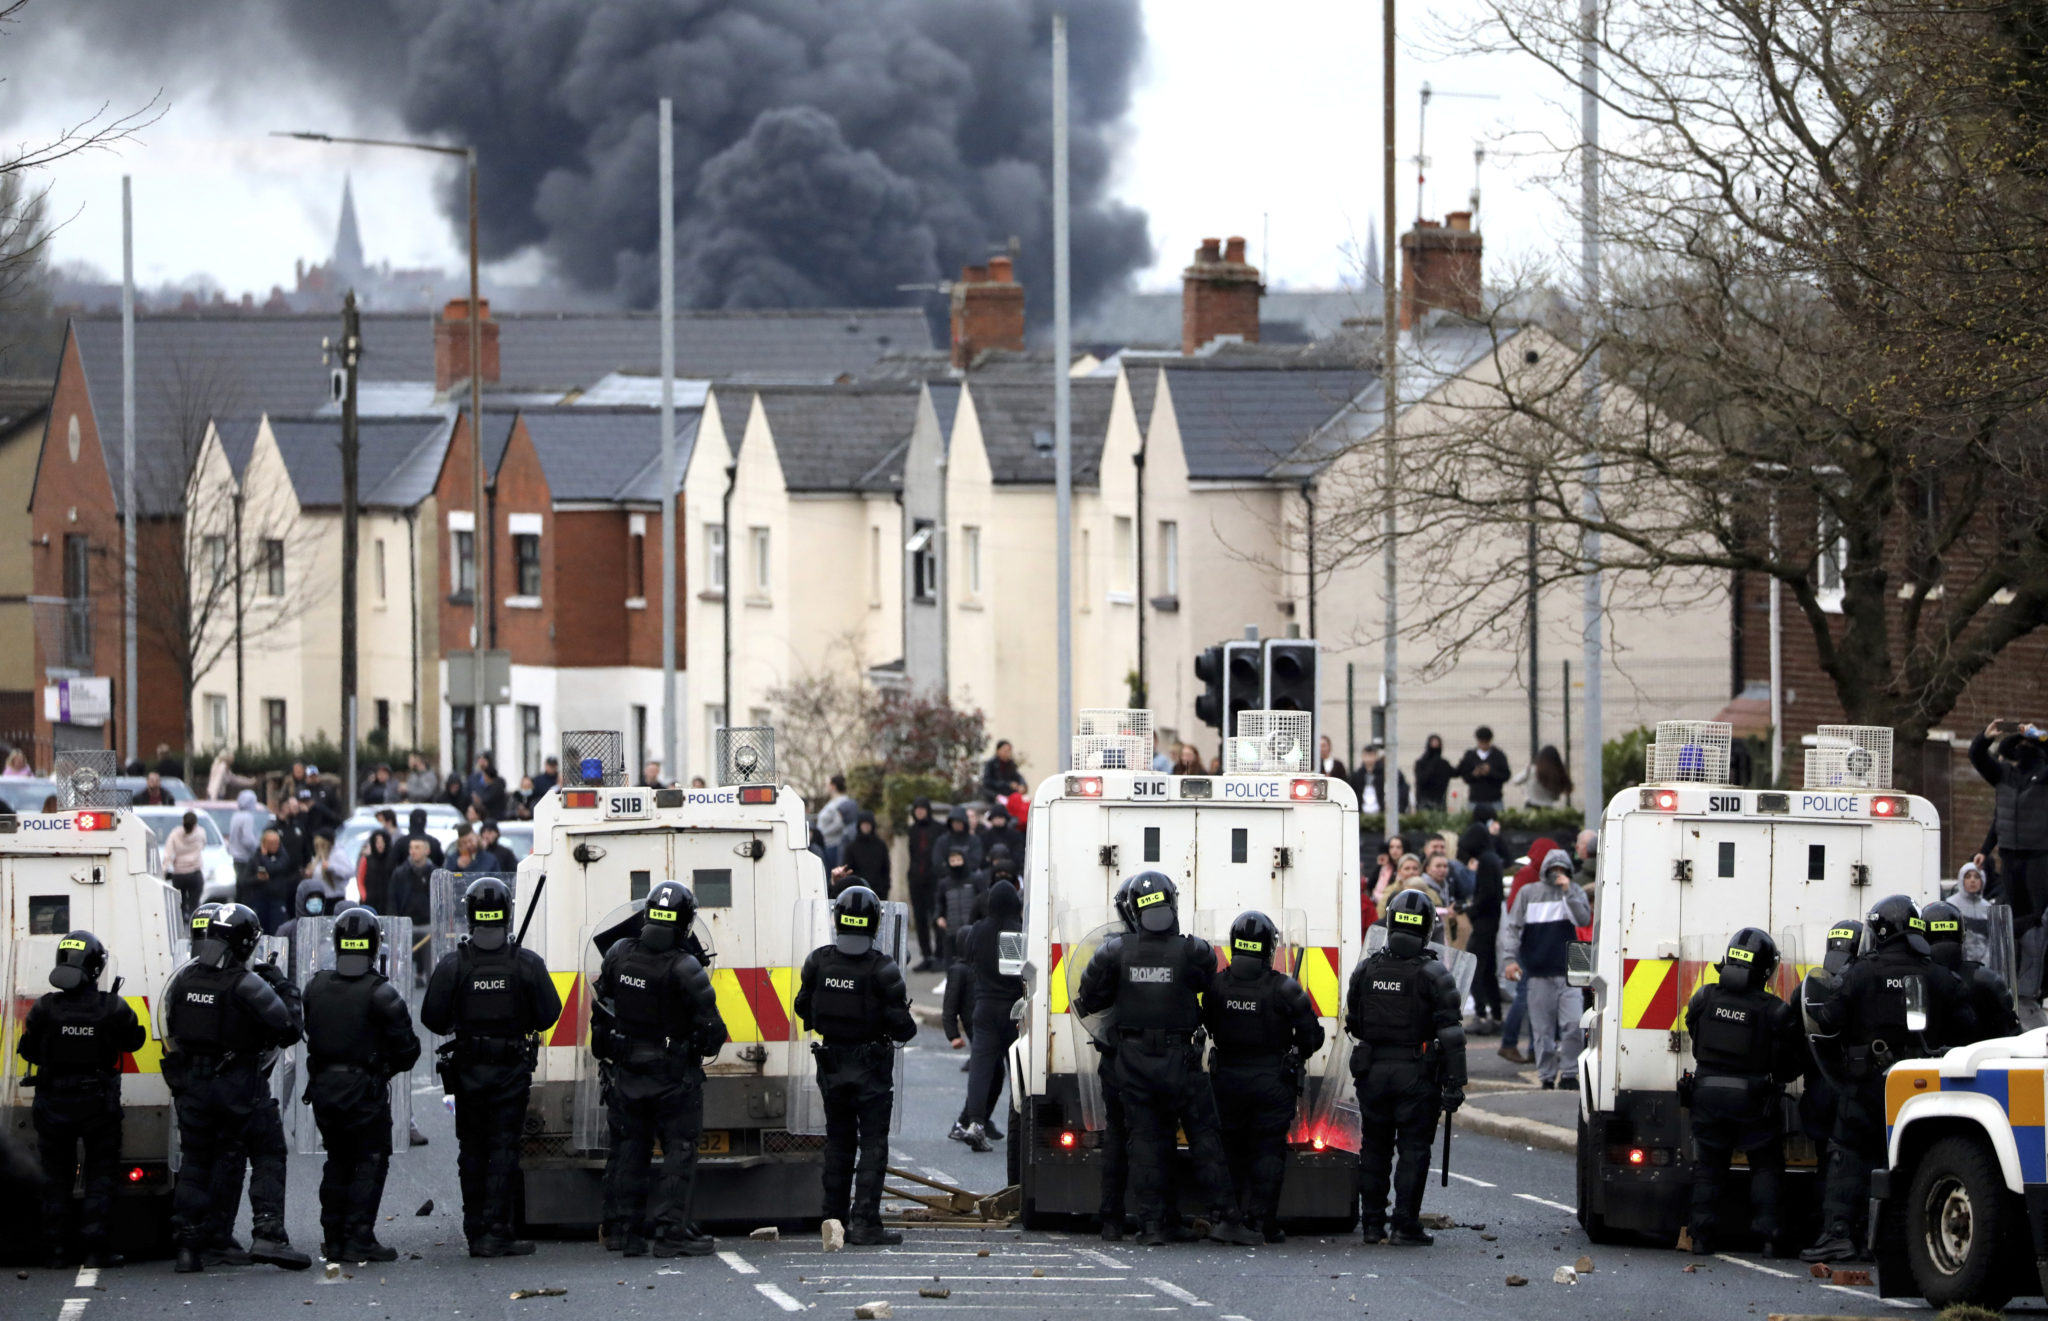 Police form a line on the Springfield road to stop Nationalists and Loyalists attacking each other, as a hijacked bus burns in the distance